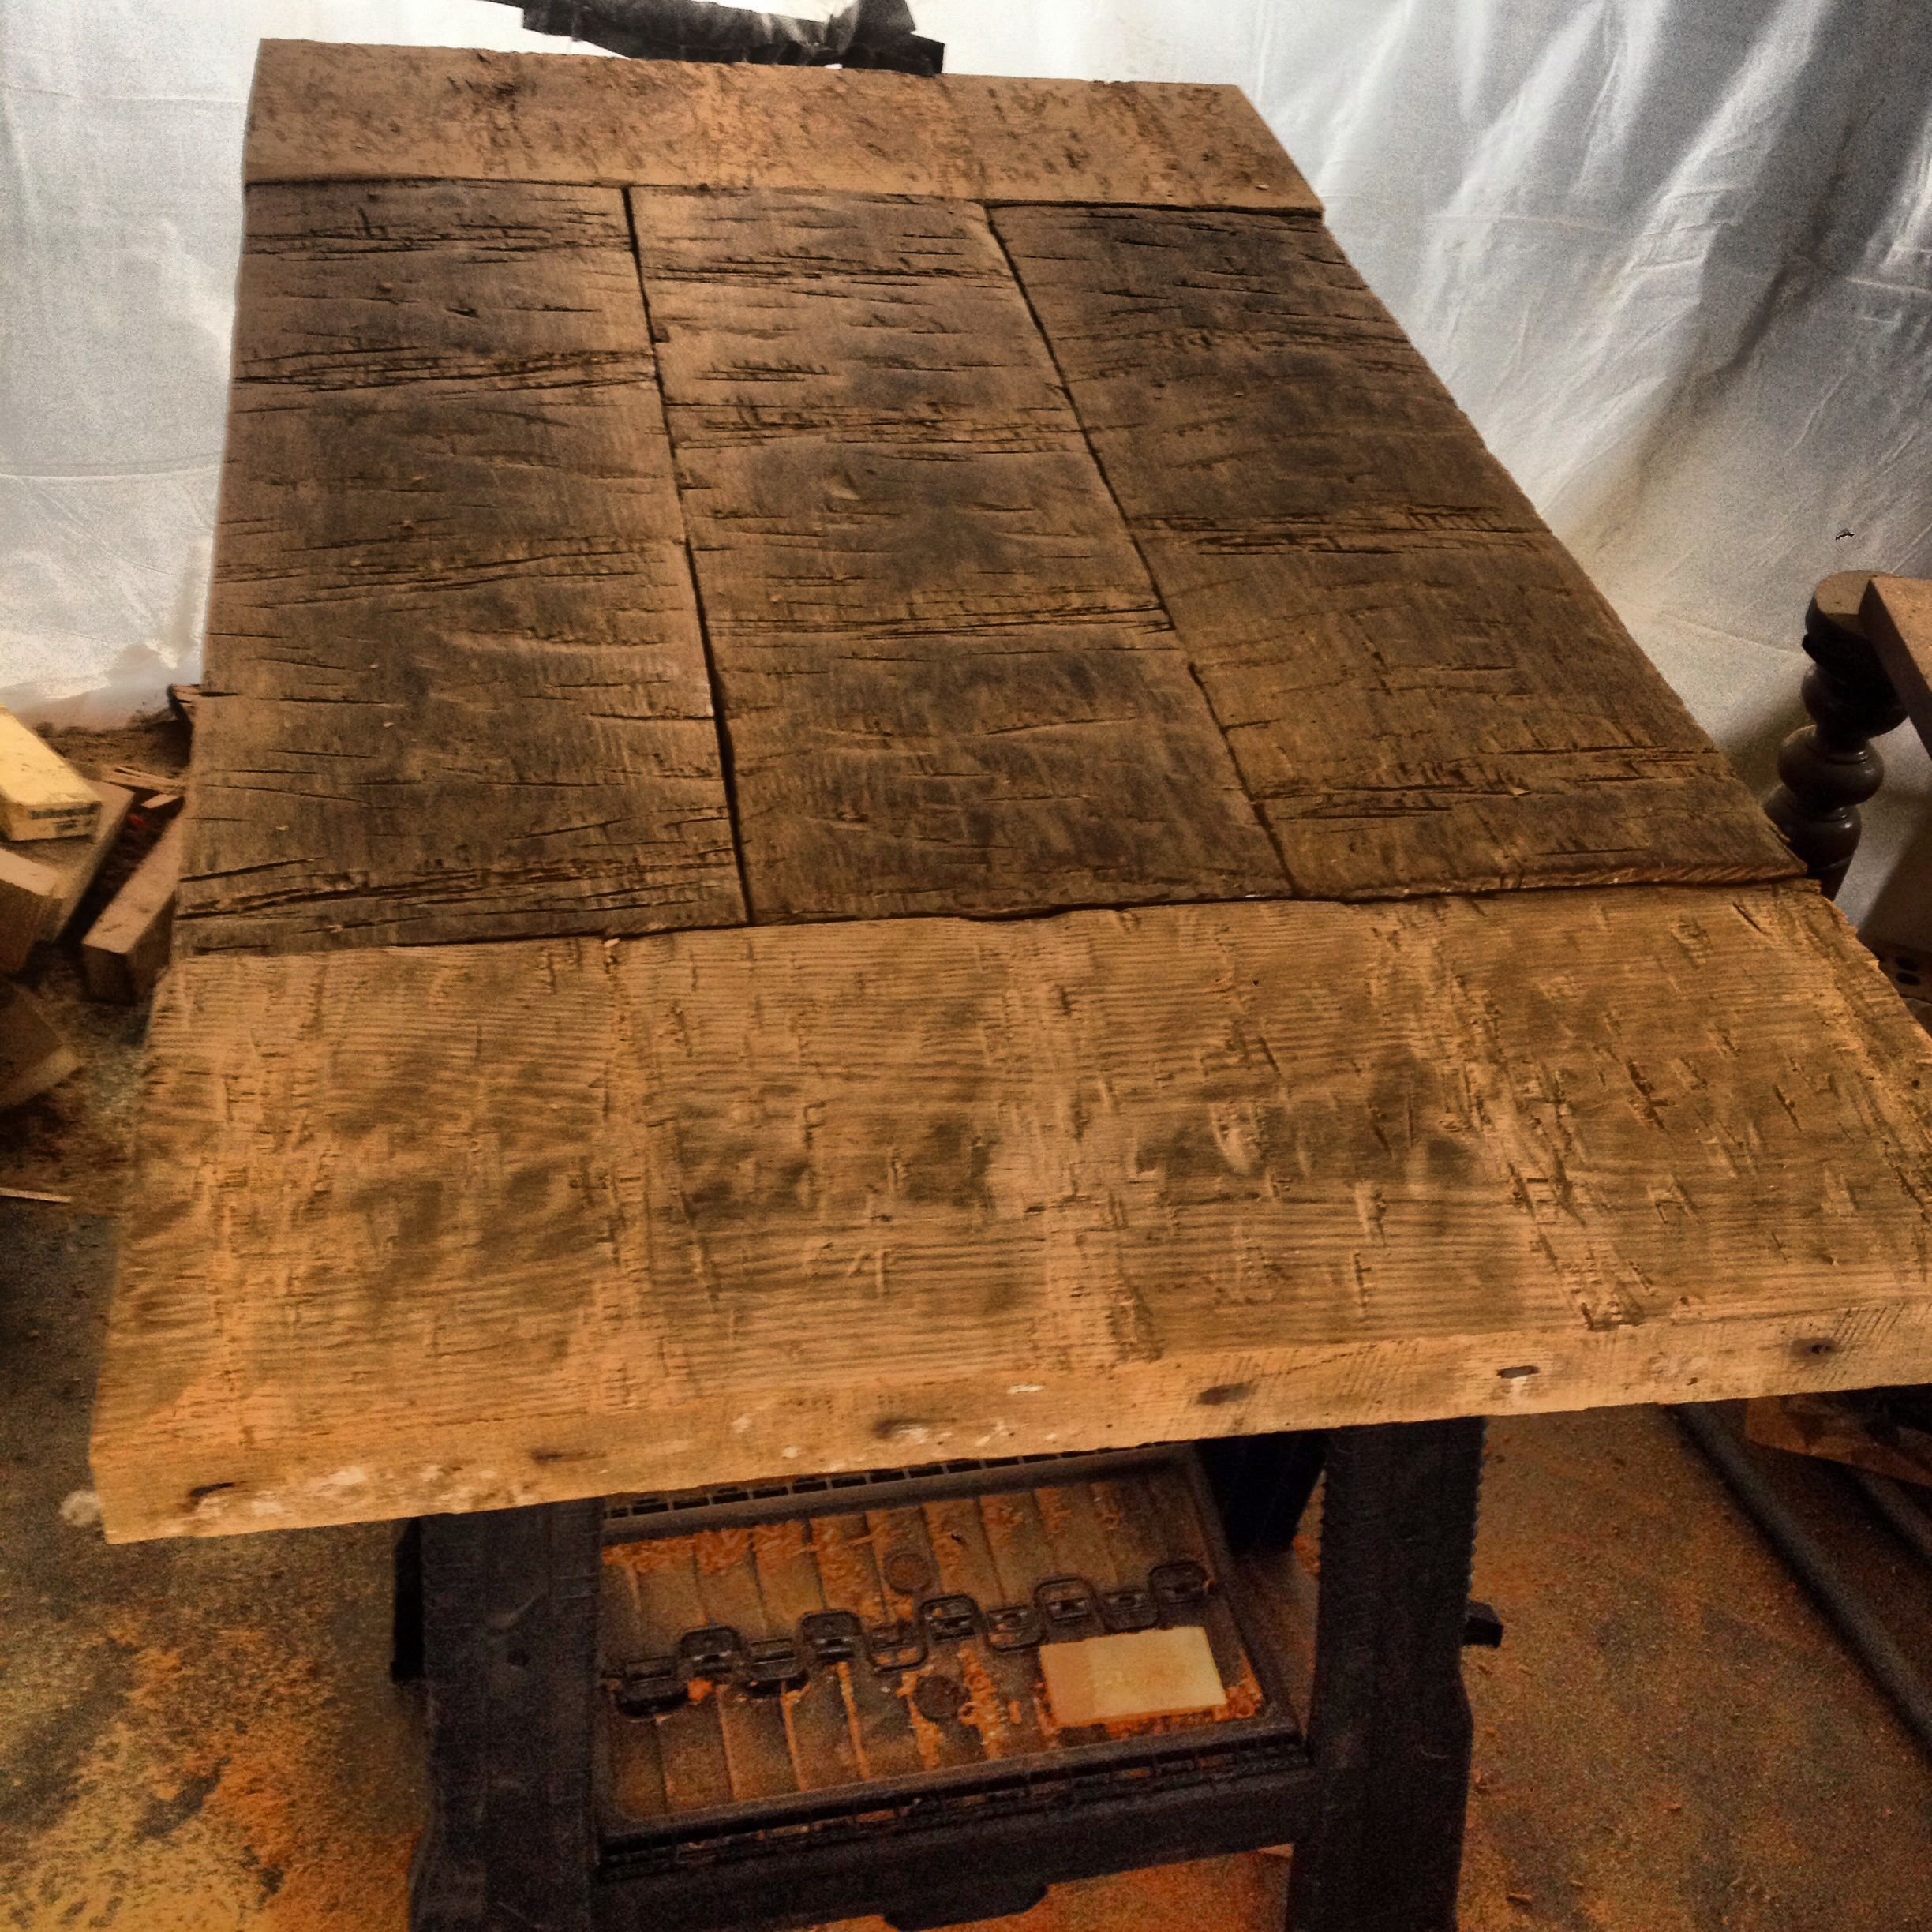 Charmant Hand Hewn Oak Tabletop For A Rustic Harvest Table.